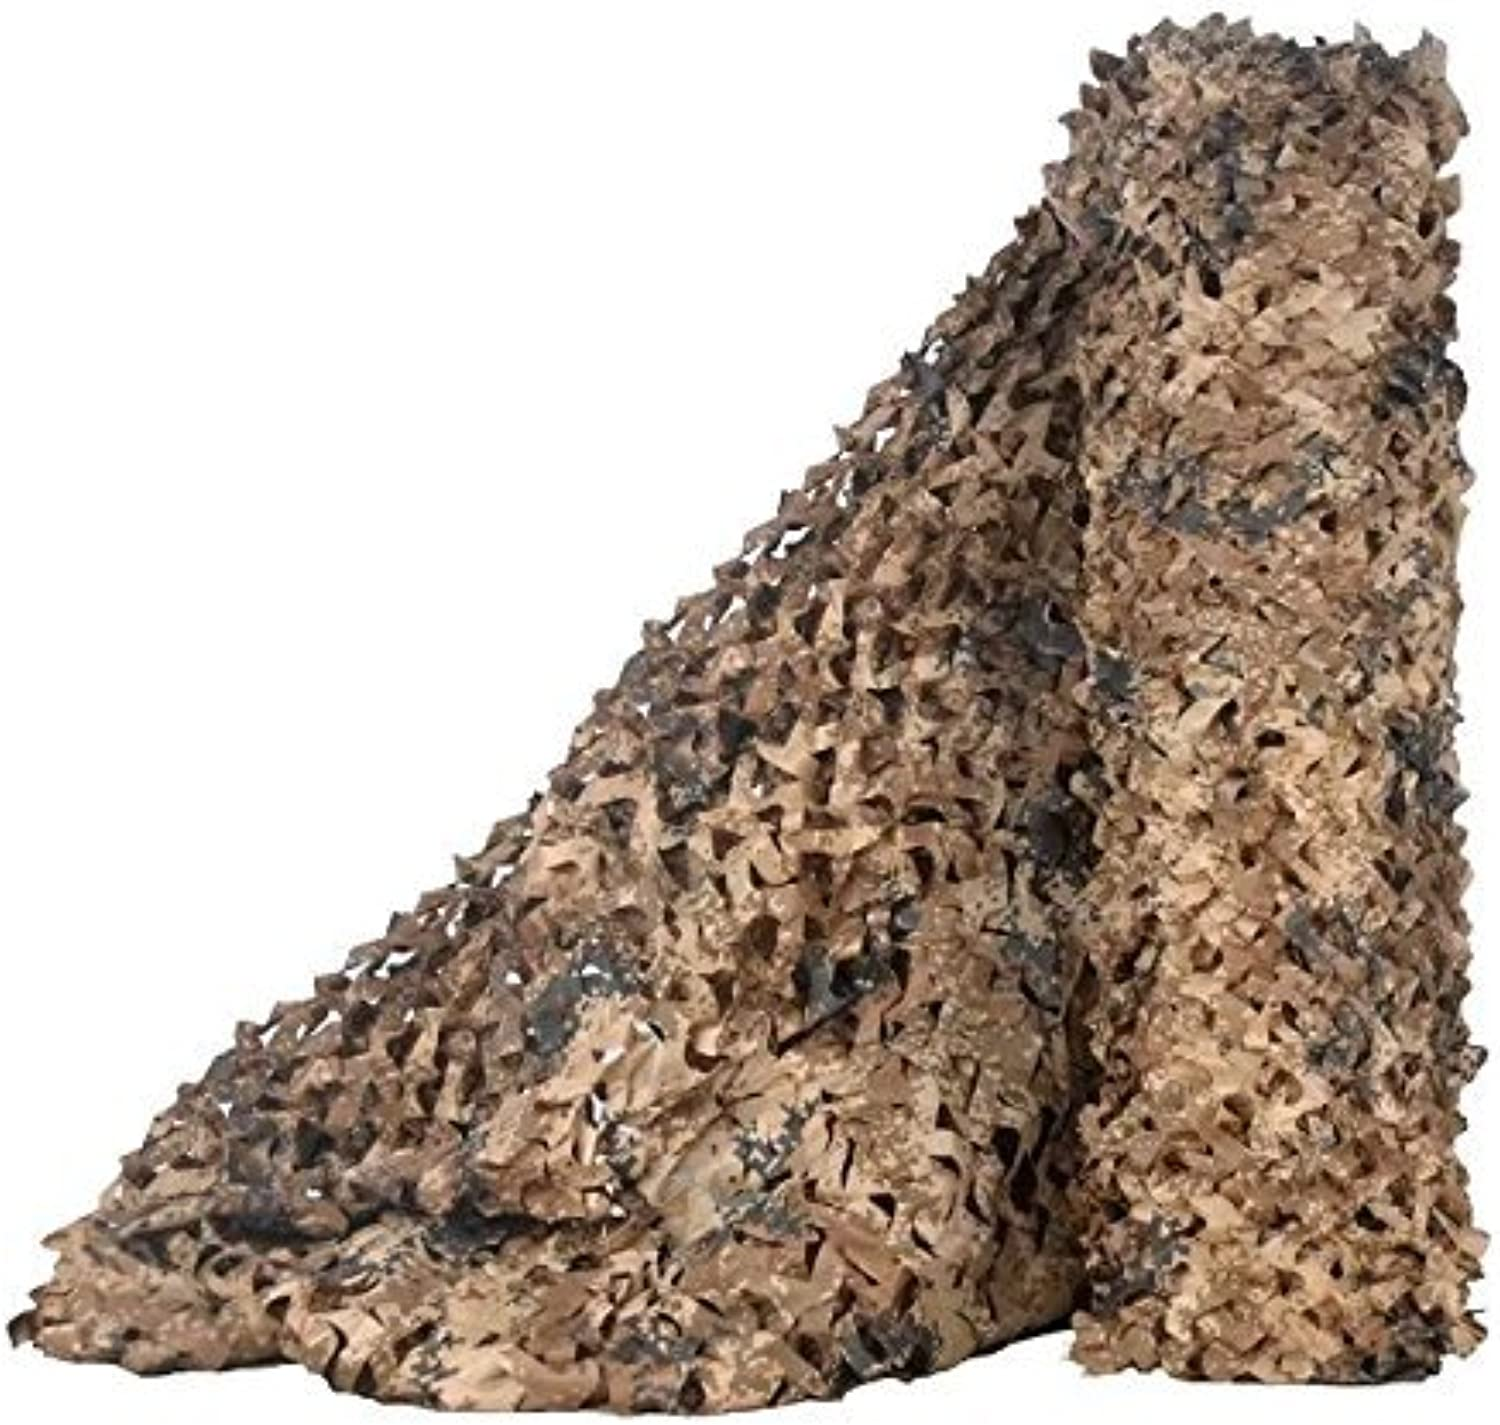 Camo Netting, Camouflage Net Blinds Great for Sunshade Camping Shooting Hunting Military Decoration etc.